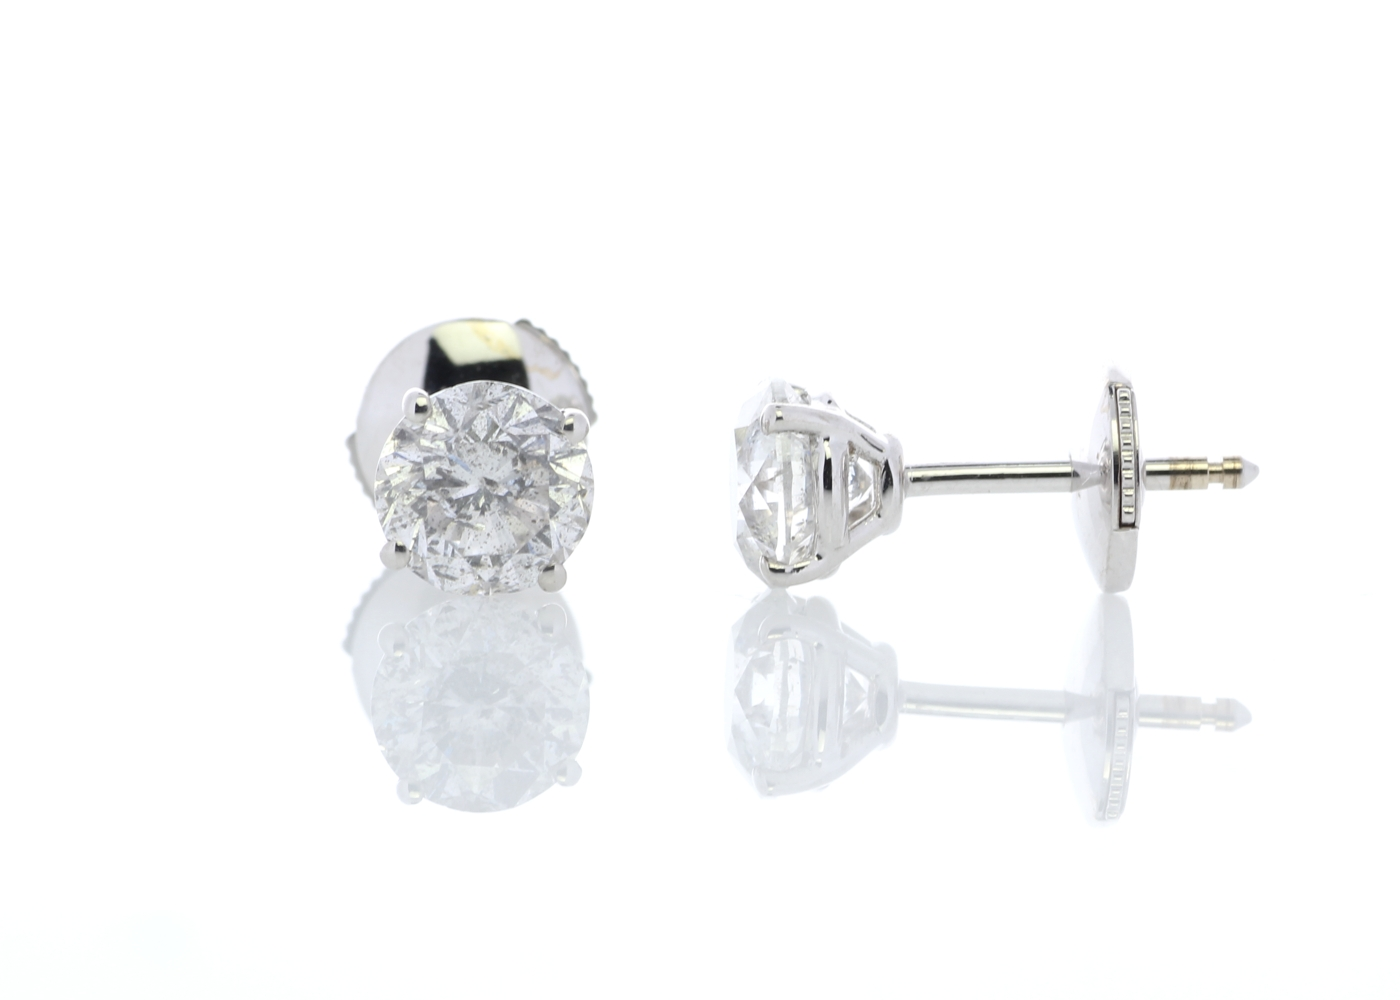 18ct White Gold Claw Set Diamond Earrings 2.21 Carats - Image 3 of 4